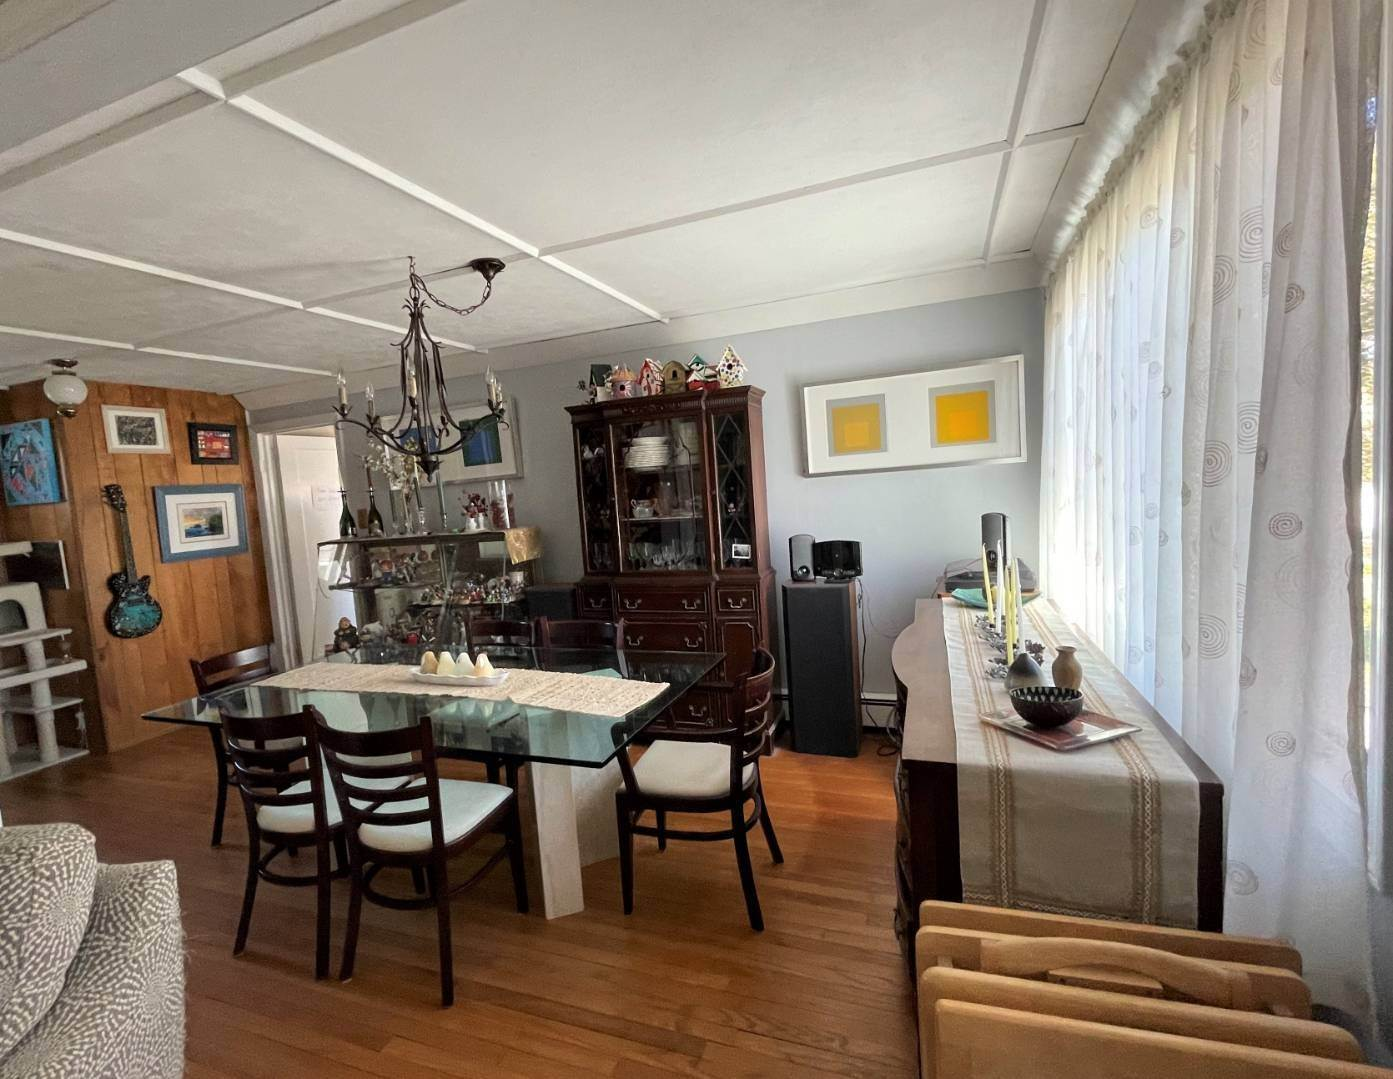 9. Single Family Home for Sale at Bluff Road, Amagansett 88 Bluff Road, Amagansett, NY 11930